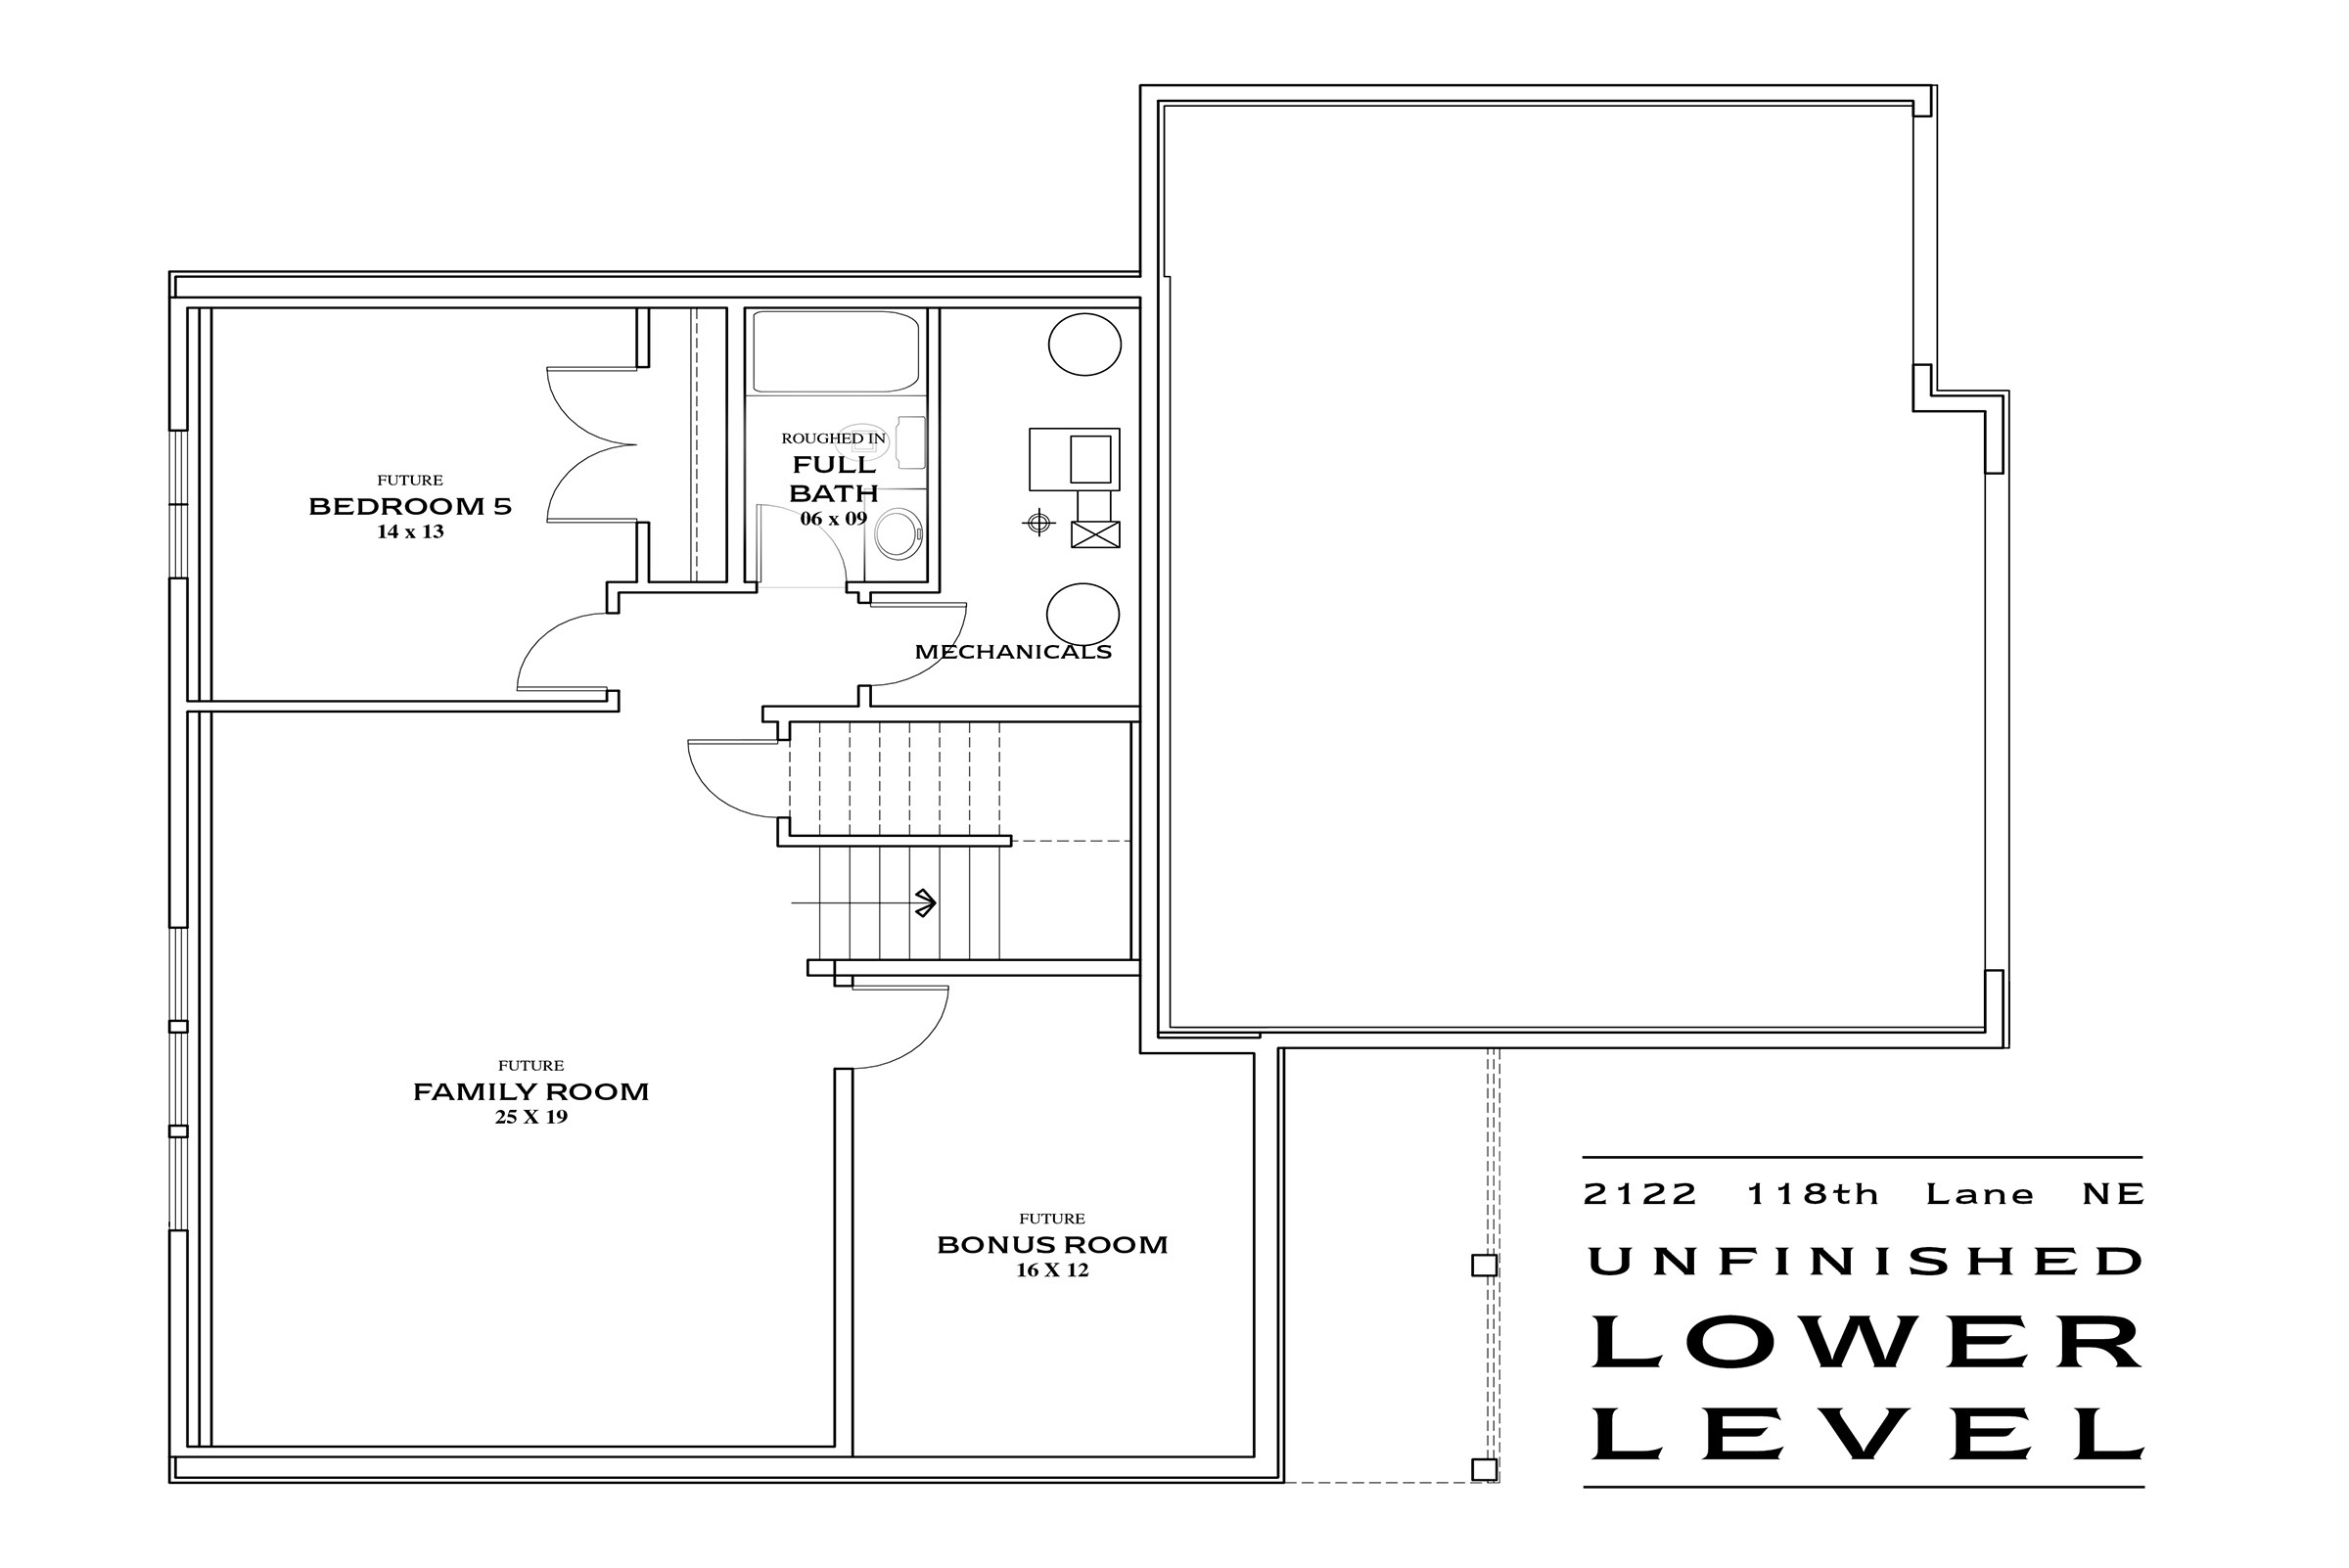 TJB Maddy Home Plan #360 Lower Floor Plan